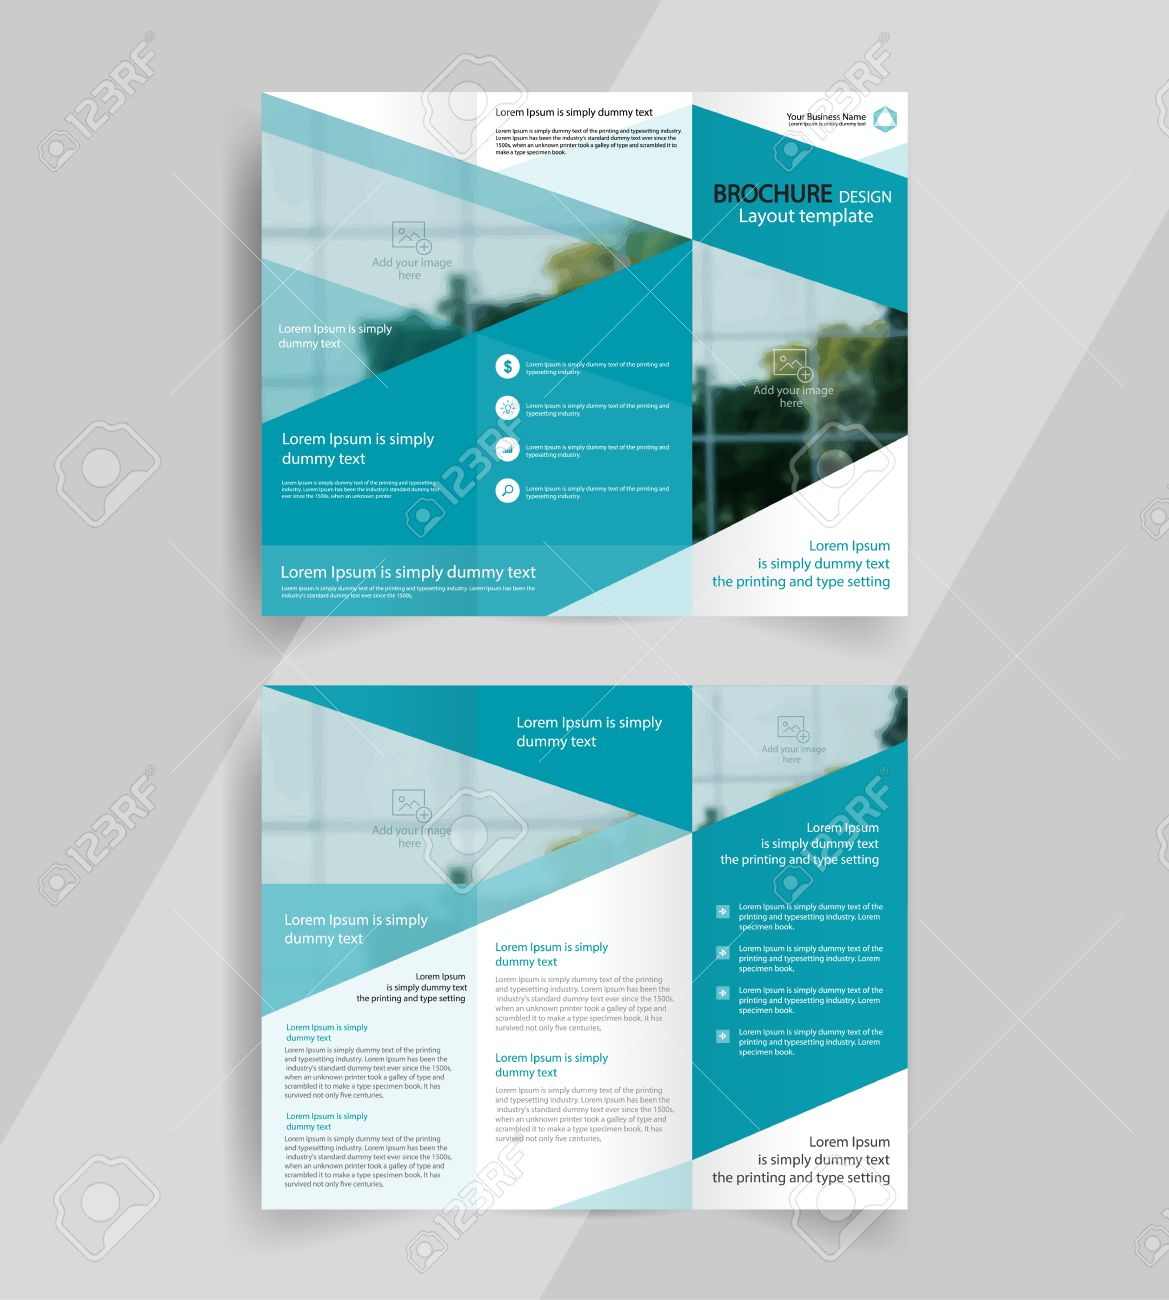 Business Tri fold Brochure Layout Design  vector A4 Brochure     business tri fold brochure layout design  vector a4 brochure template Stock  Vector   67463161